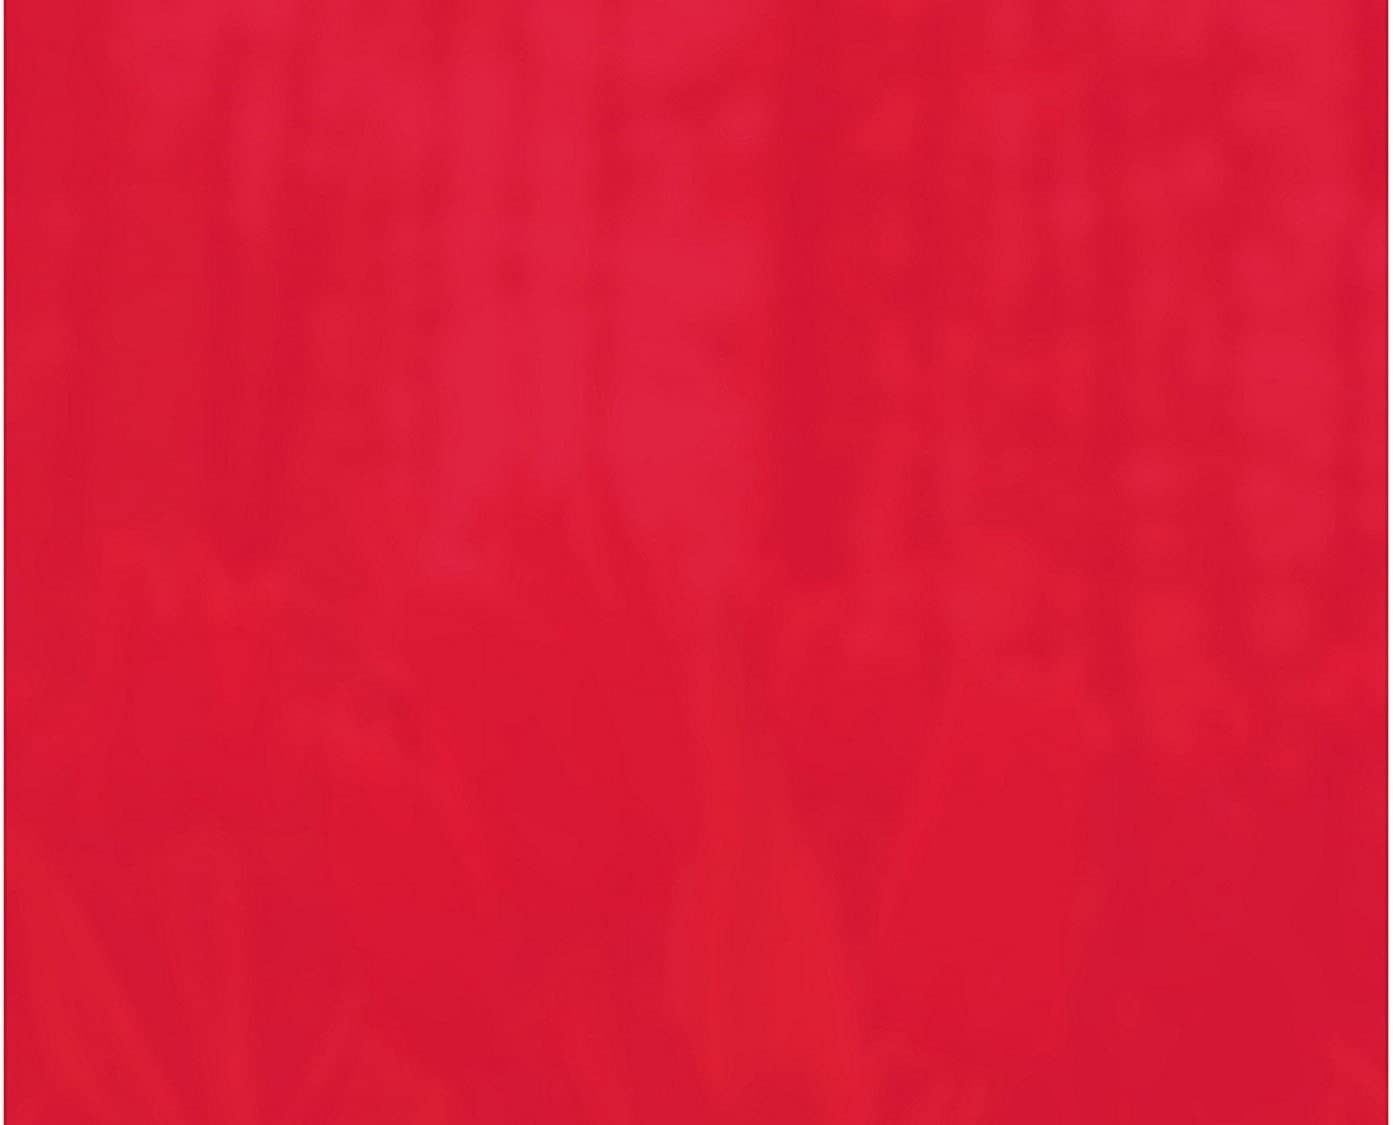 Sticky Back Plastic Self Adhesive Vinyl Fablon Red FAB10036